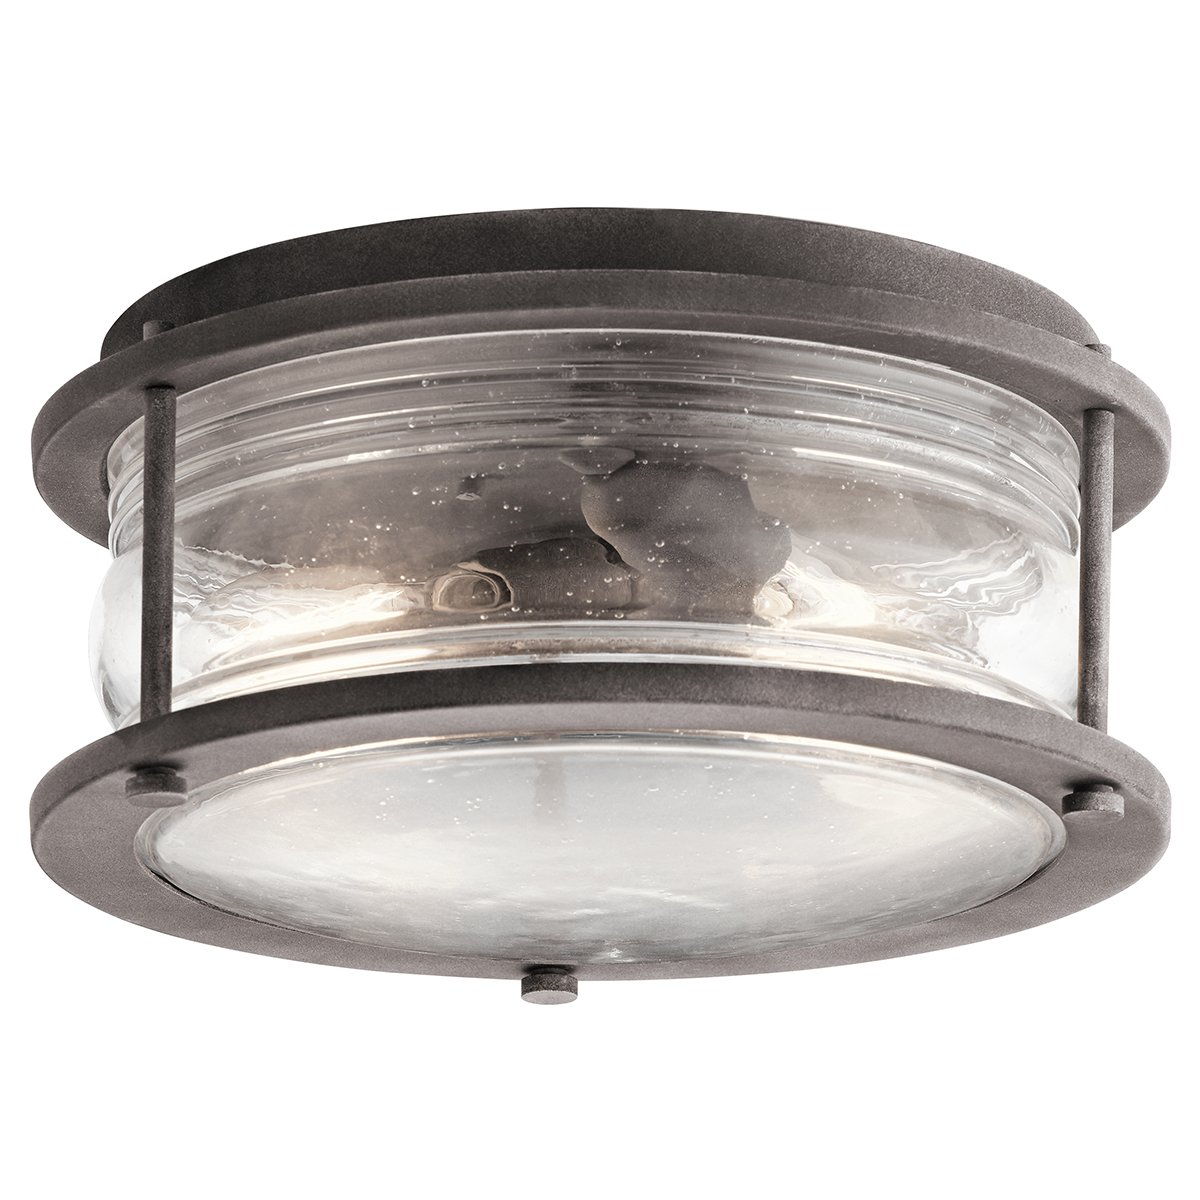 Kichler 49669WZC Two Light Outdoor Ceiling Mount by Kichler